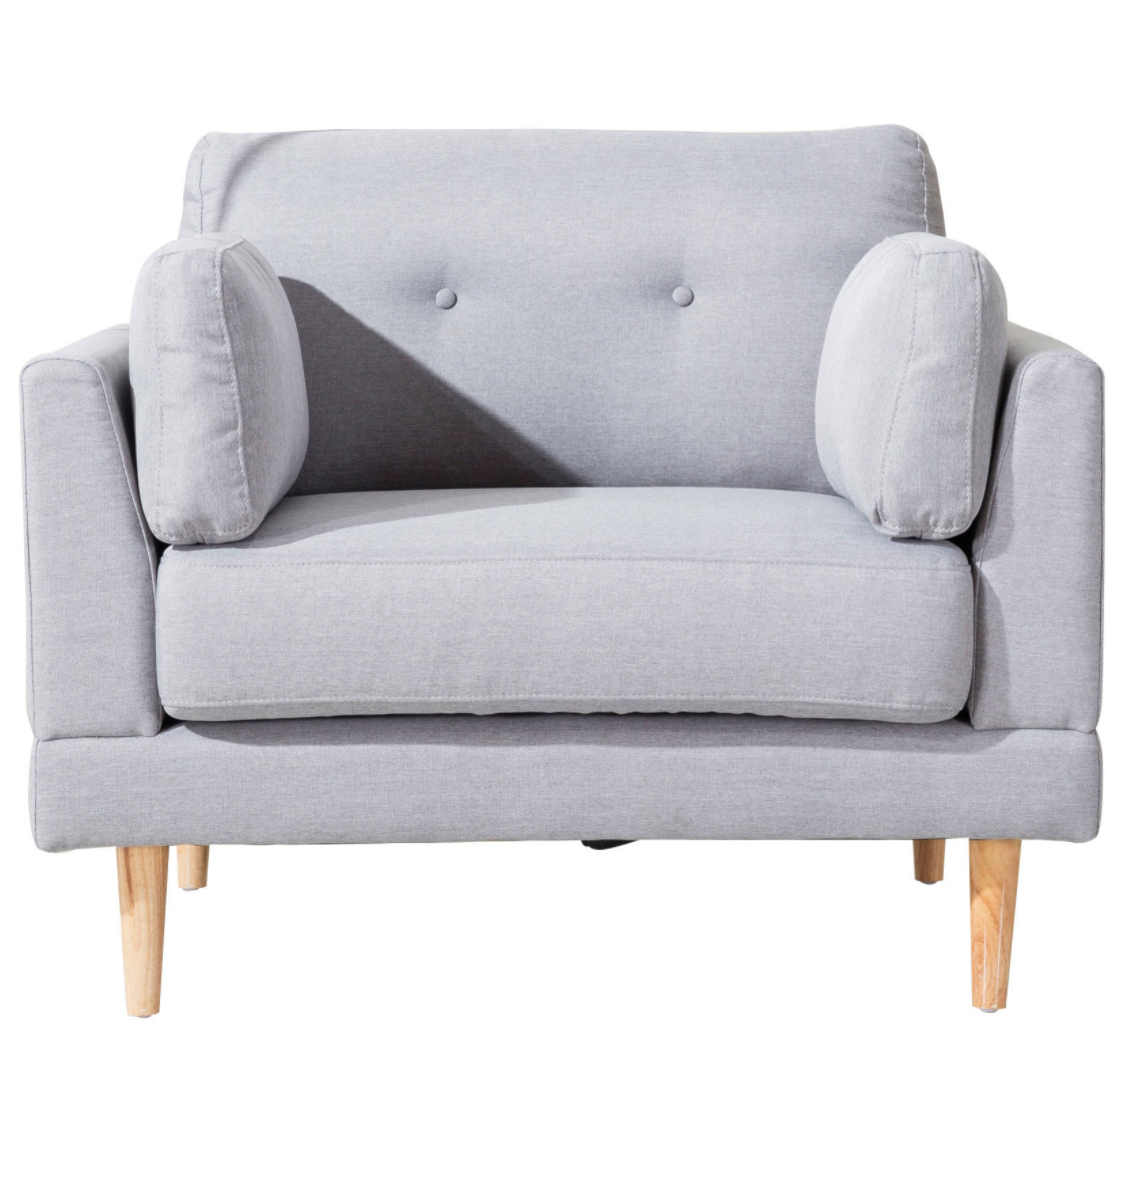 22 Best Accent Chairs for Living Room - Chic Upholstered Accent Chairs